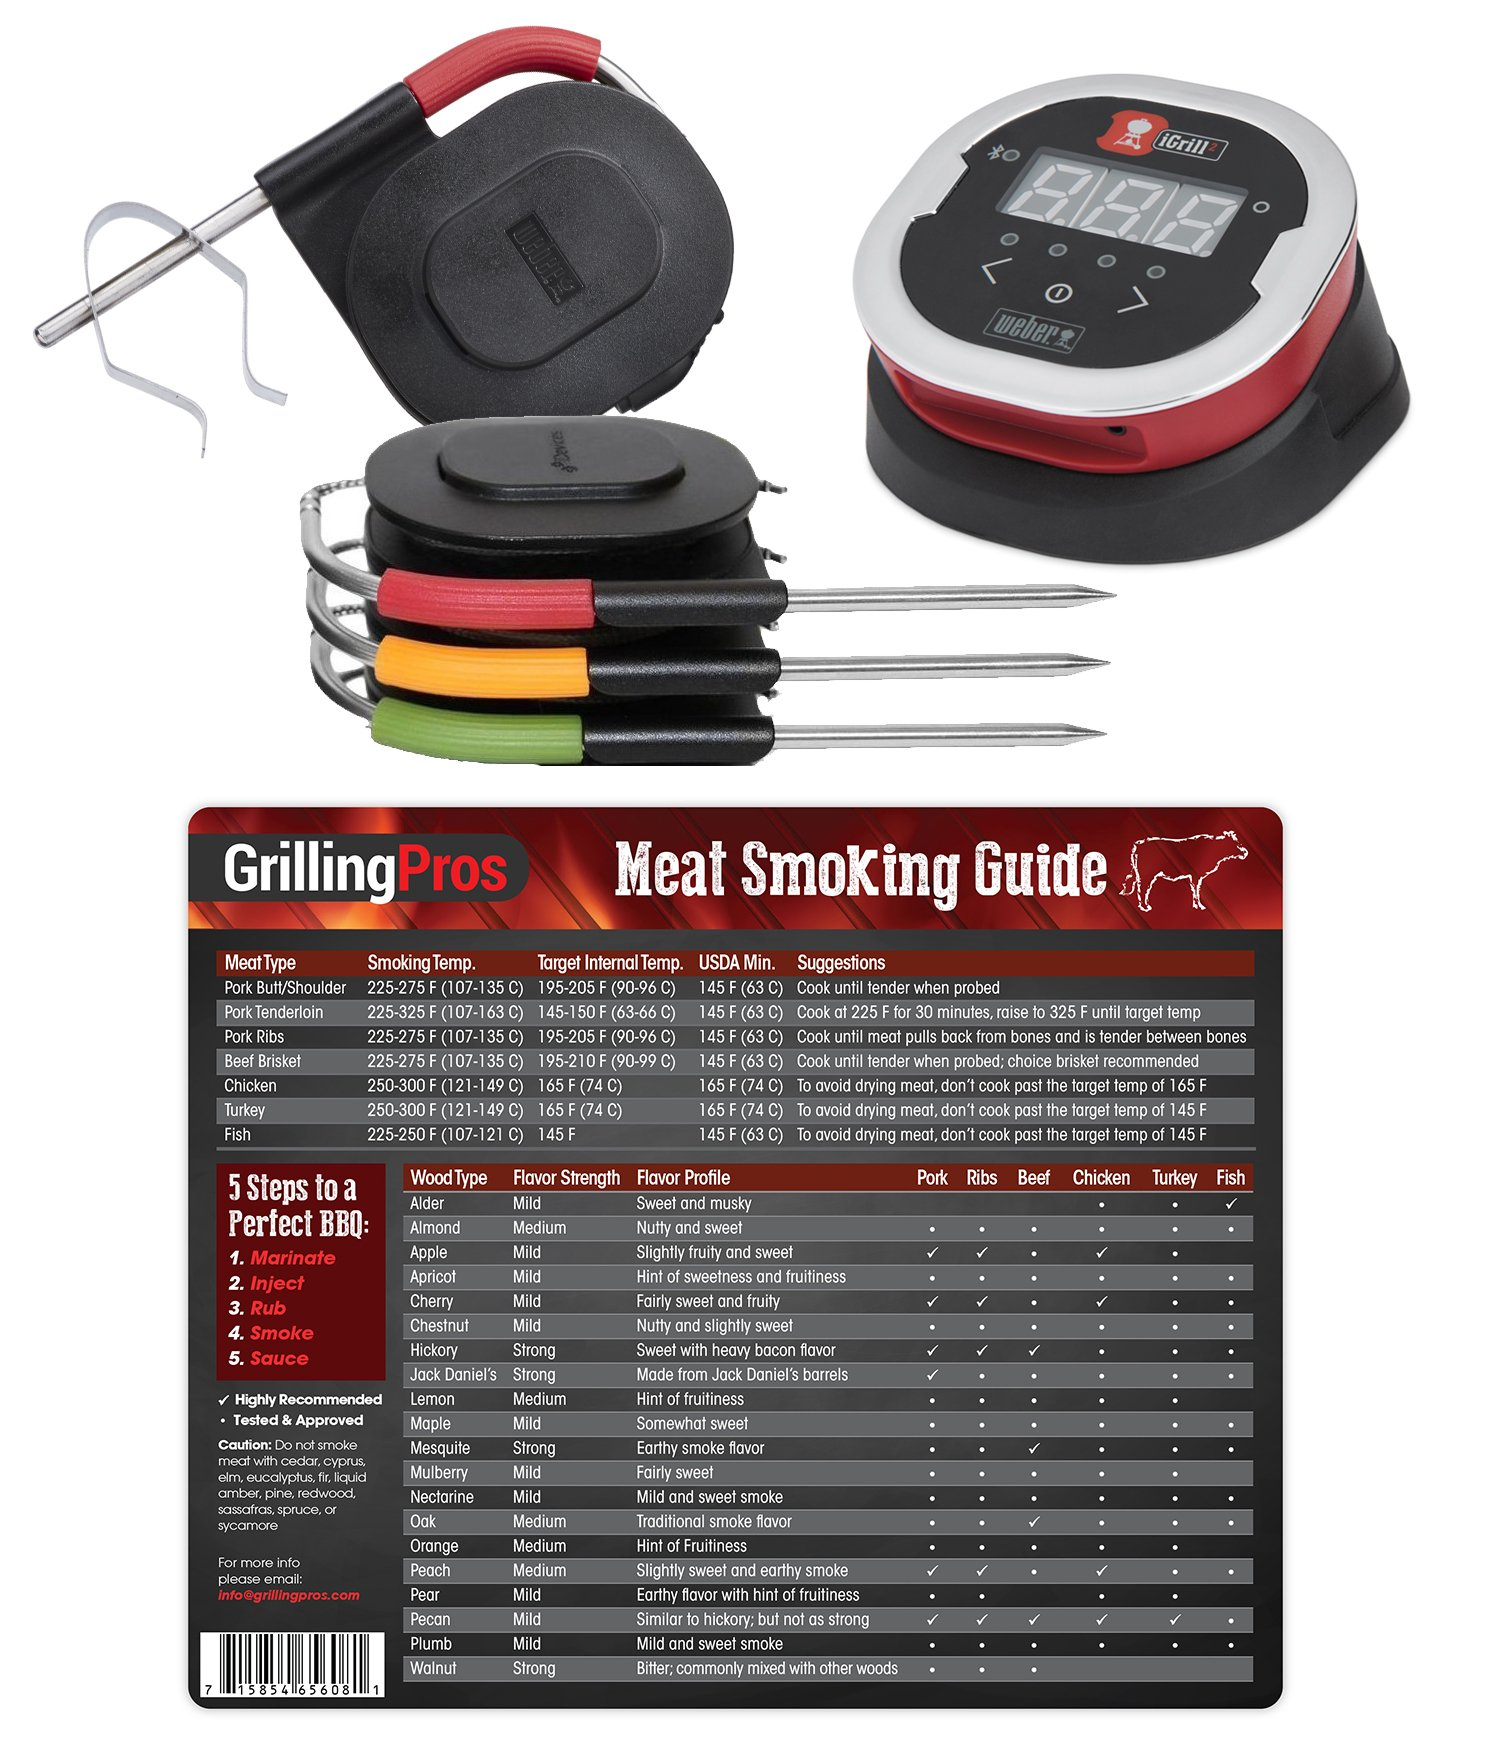 GrillingPros Weber iGrill2 Complete Master Kit with 3 Pro Meat Probes, 1 Ambient Pro Probe Meat Smoking Guide Magnet